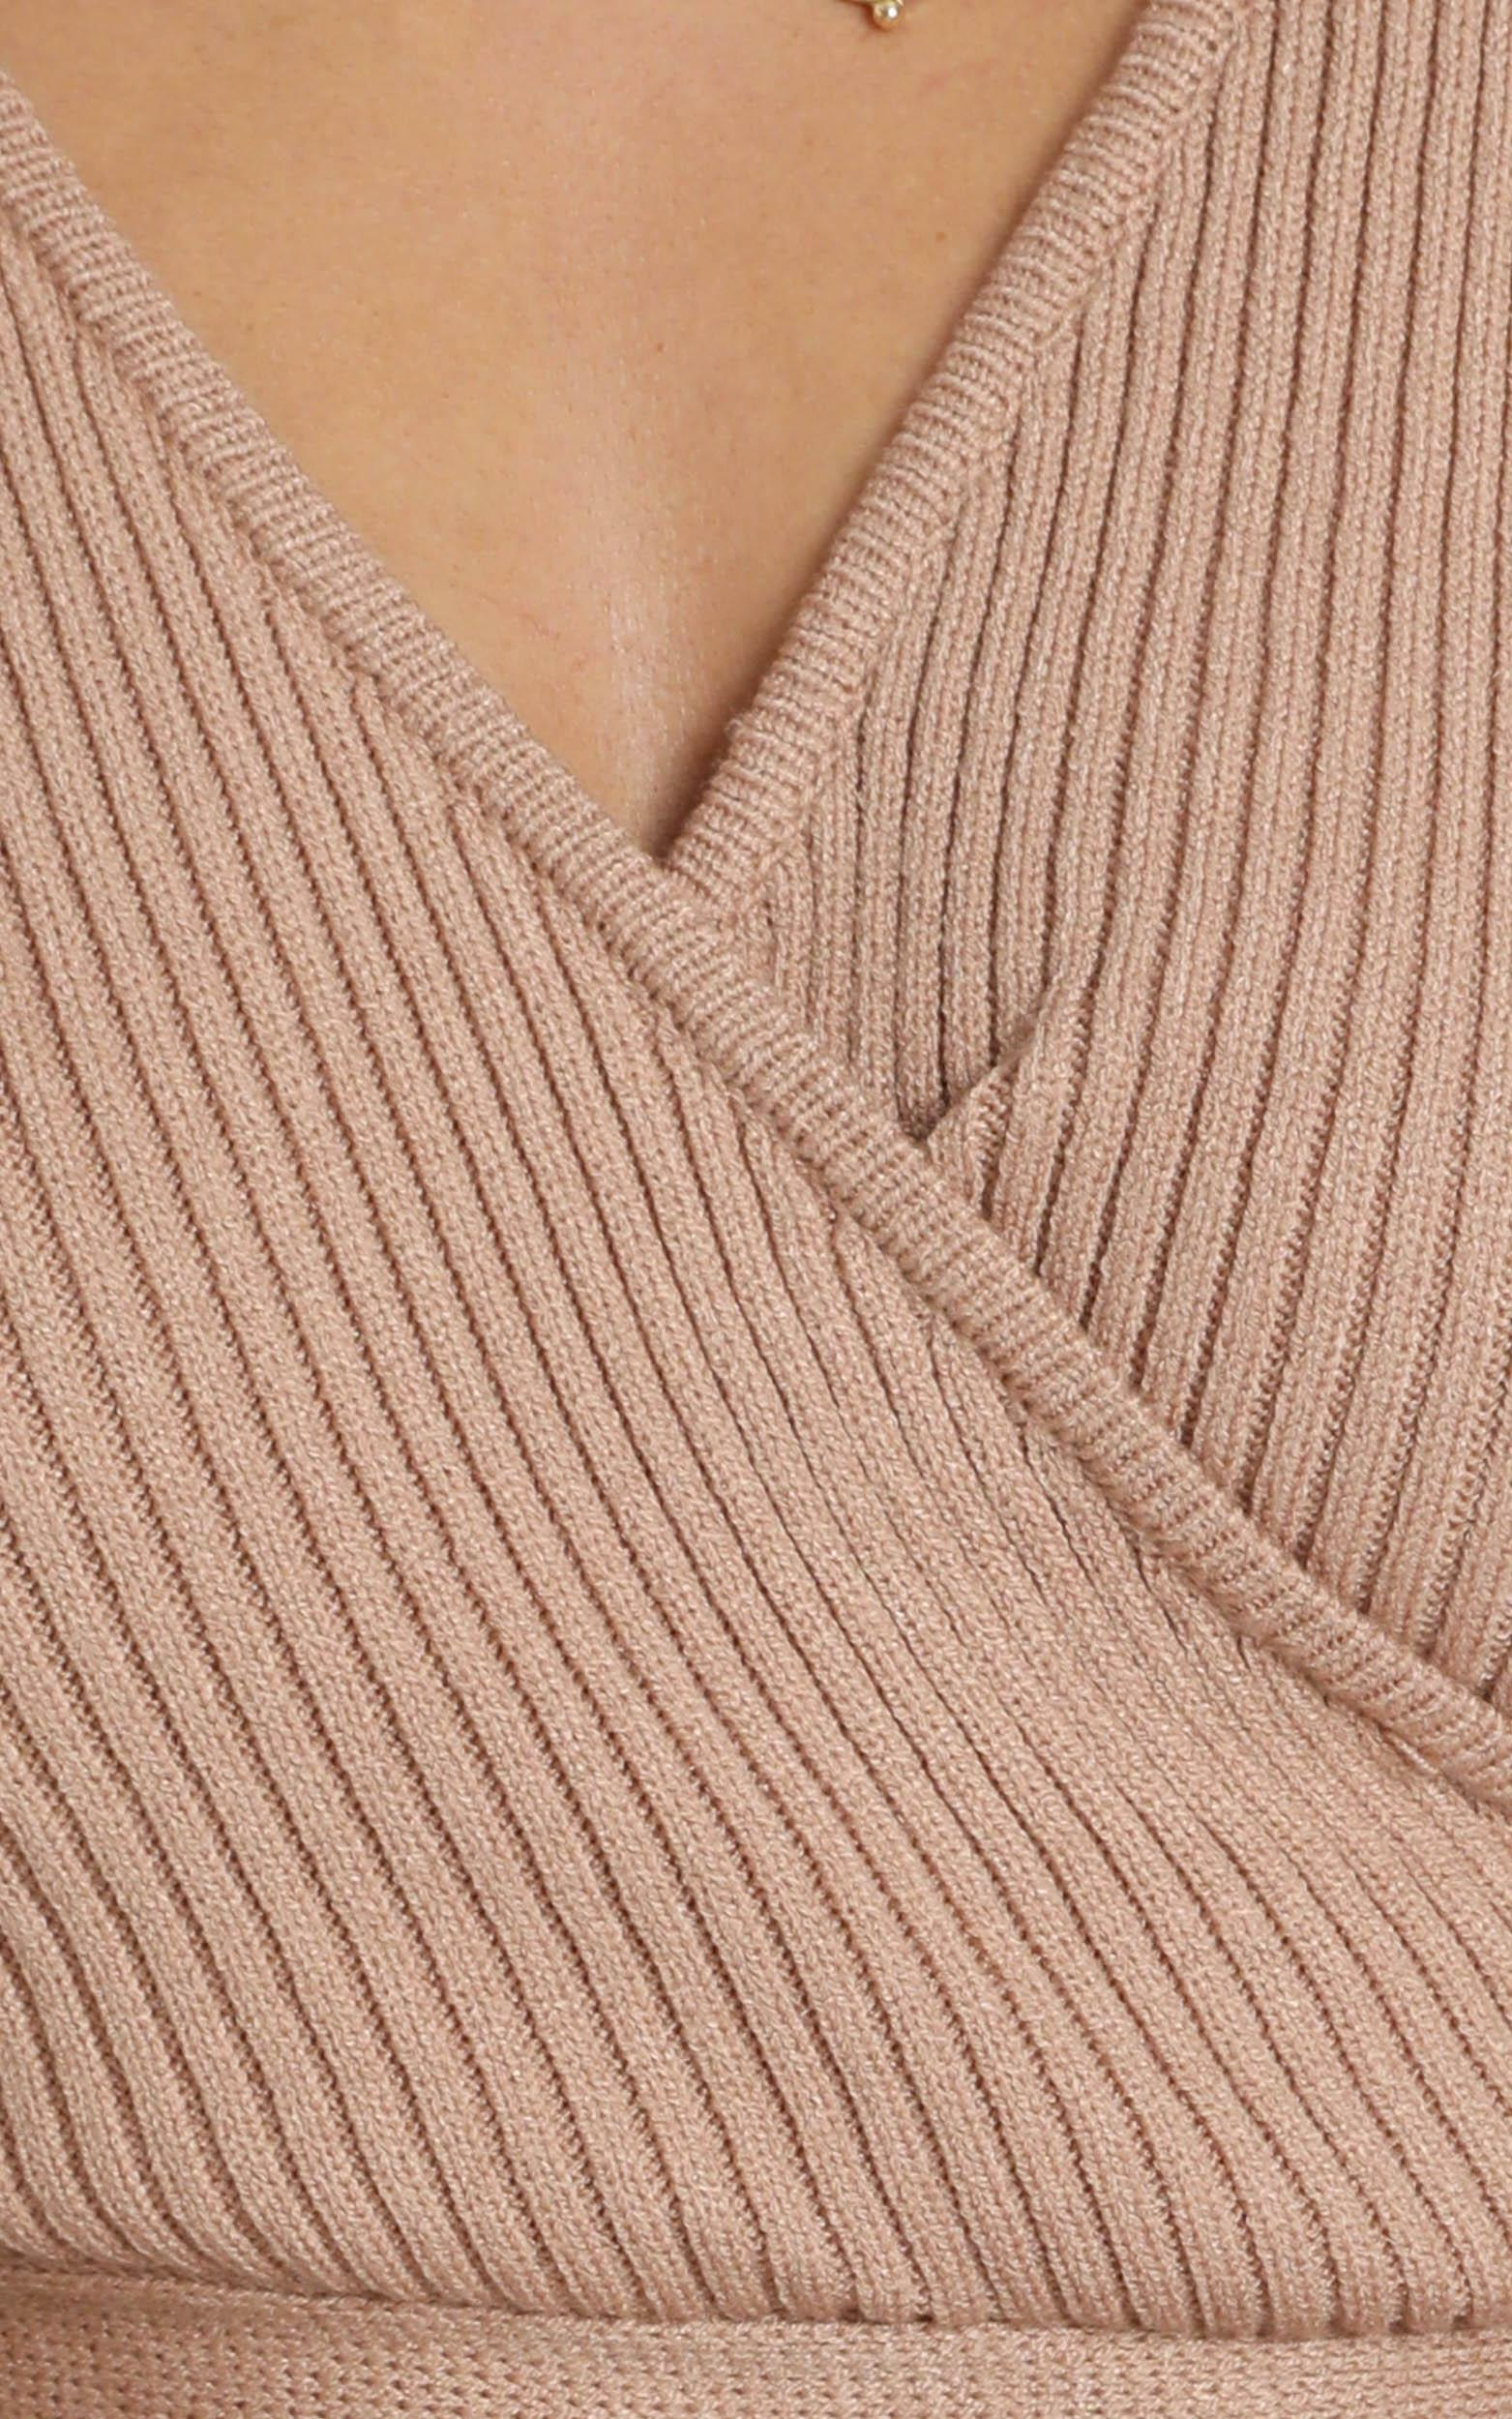 Aisling Knit Ribbed Top in Mocha - XS/S, Mocha, hi-res image number null